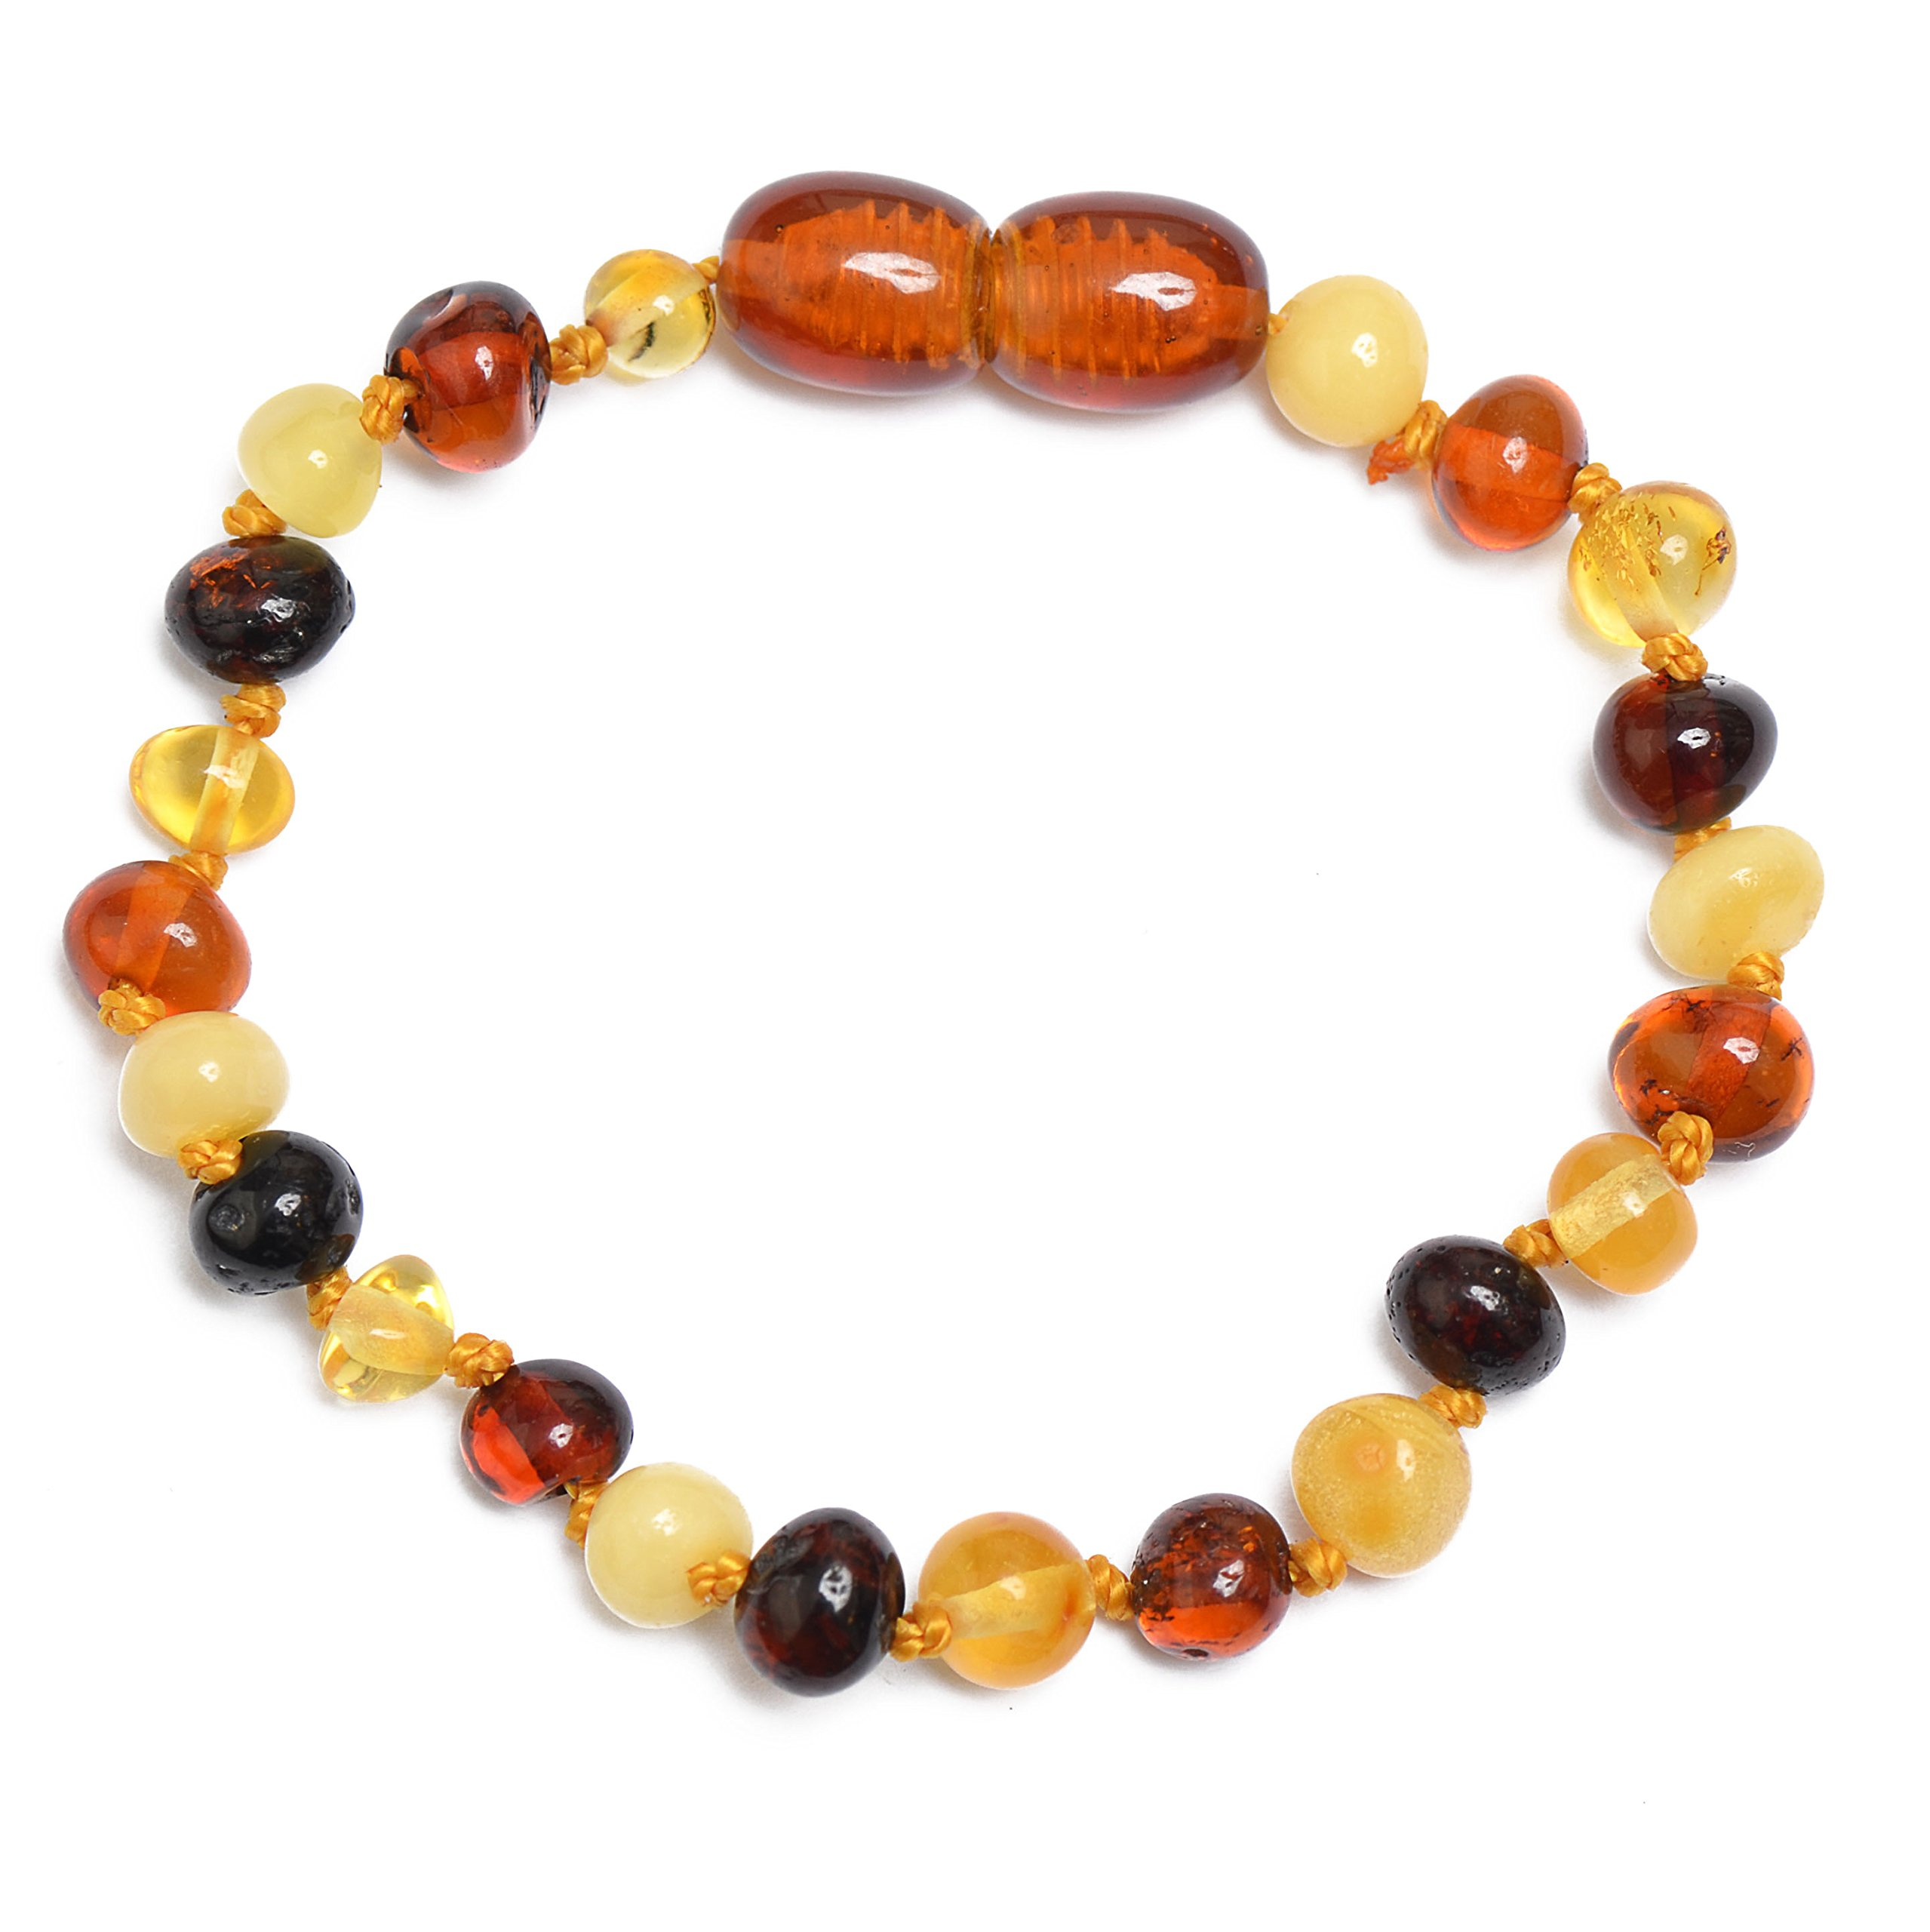 Polished Baltic Amber Teething Anklet - Bracelet for Baby - Safety Knotted - 5 different sizes and 4 different colors to choose (Mixed, 4.7)